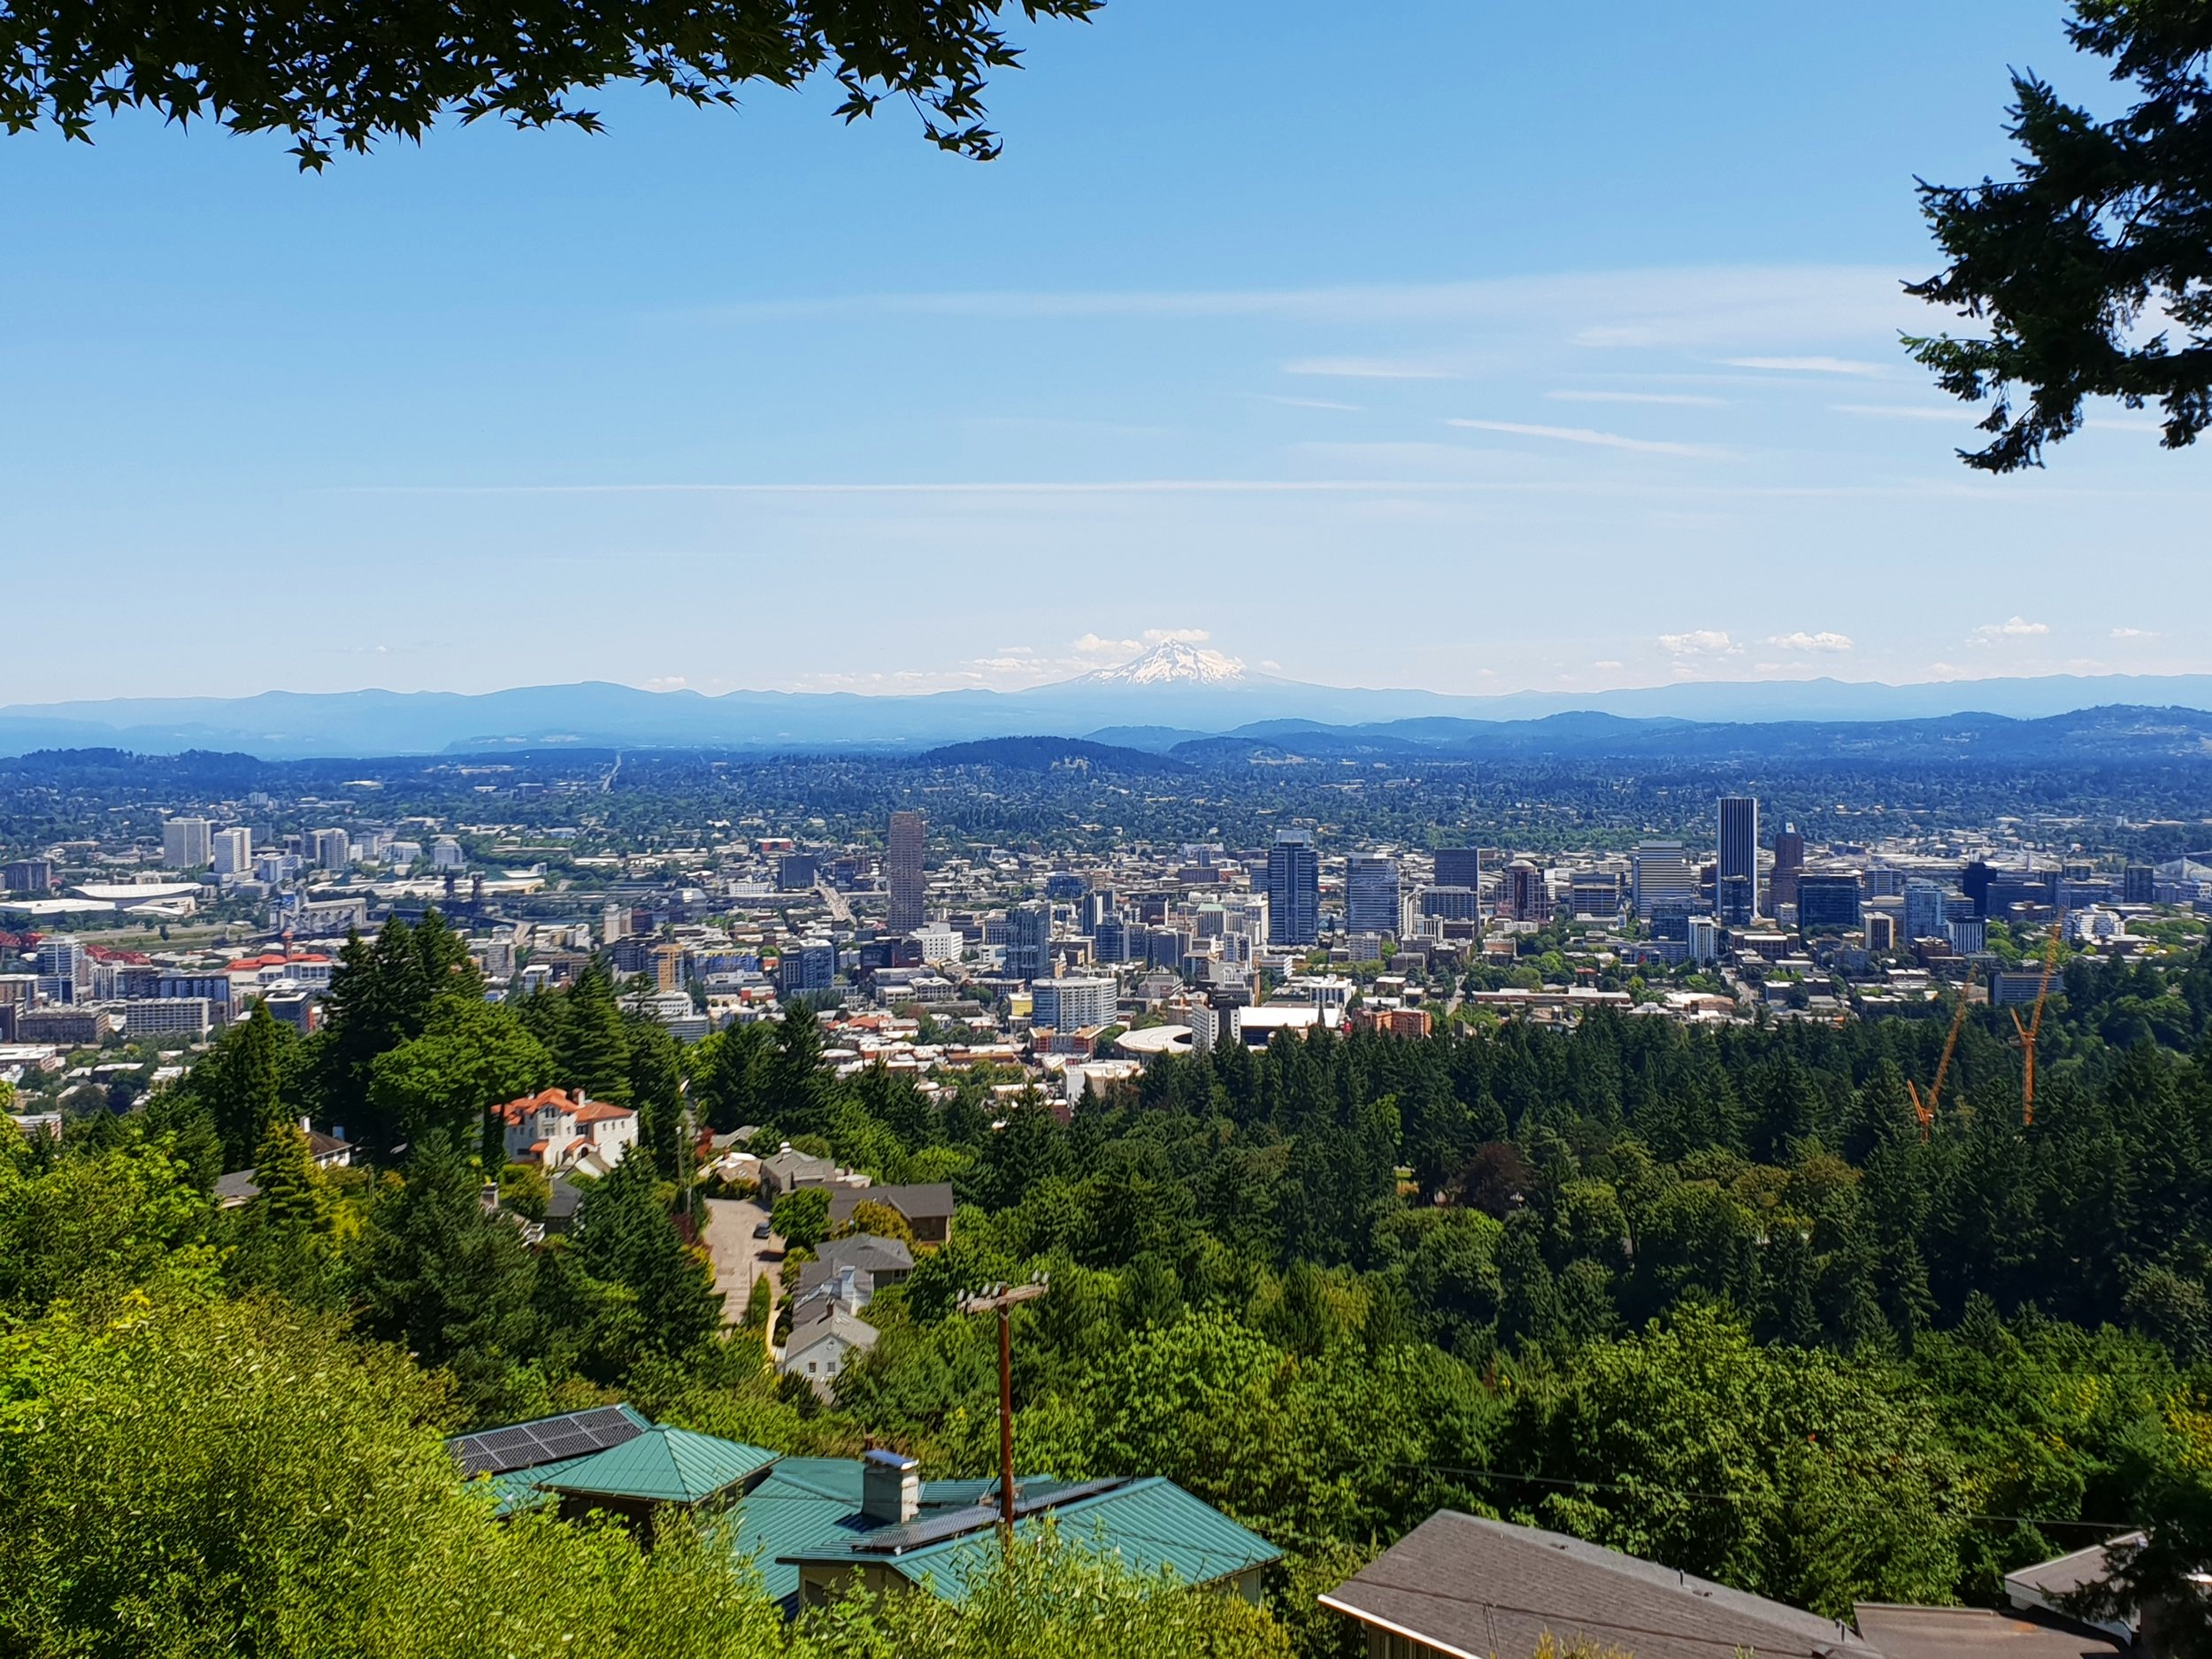 Portland (obviously). Mount Hood looms over the city, much like Mount Fuji in Japan. I've just mentioned this in an attempt to ram home the point that I like to travel, in a way that potentially disguises the fact that I am boasting. Just like anyone who posts anything on social media.